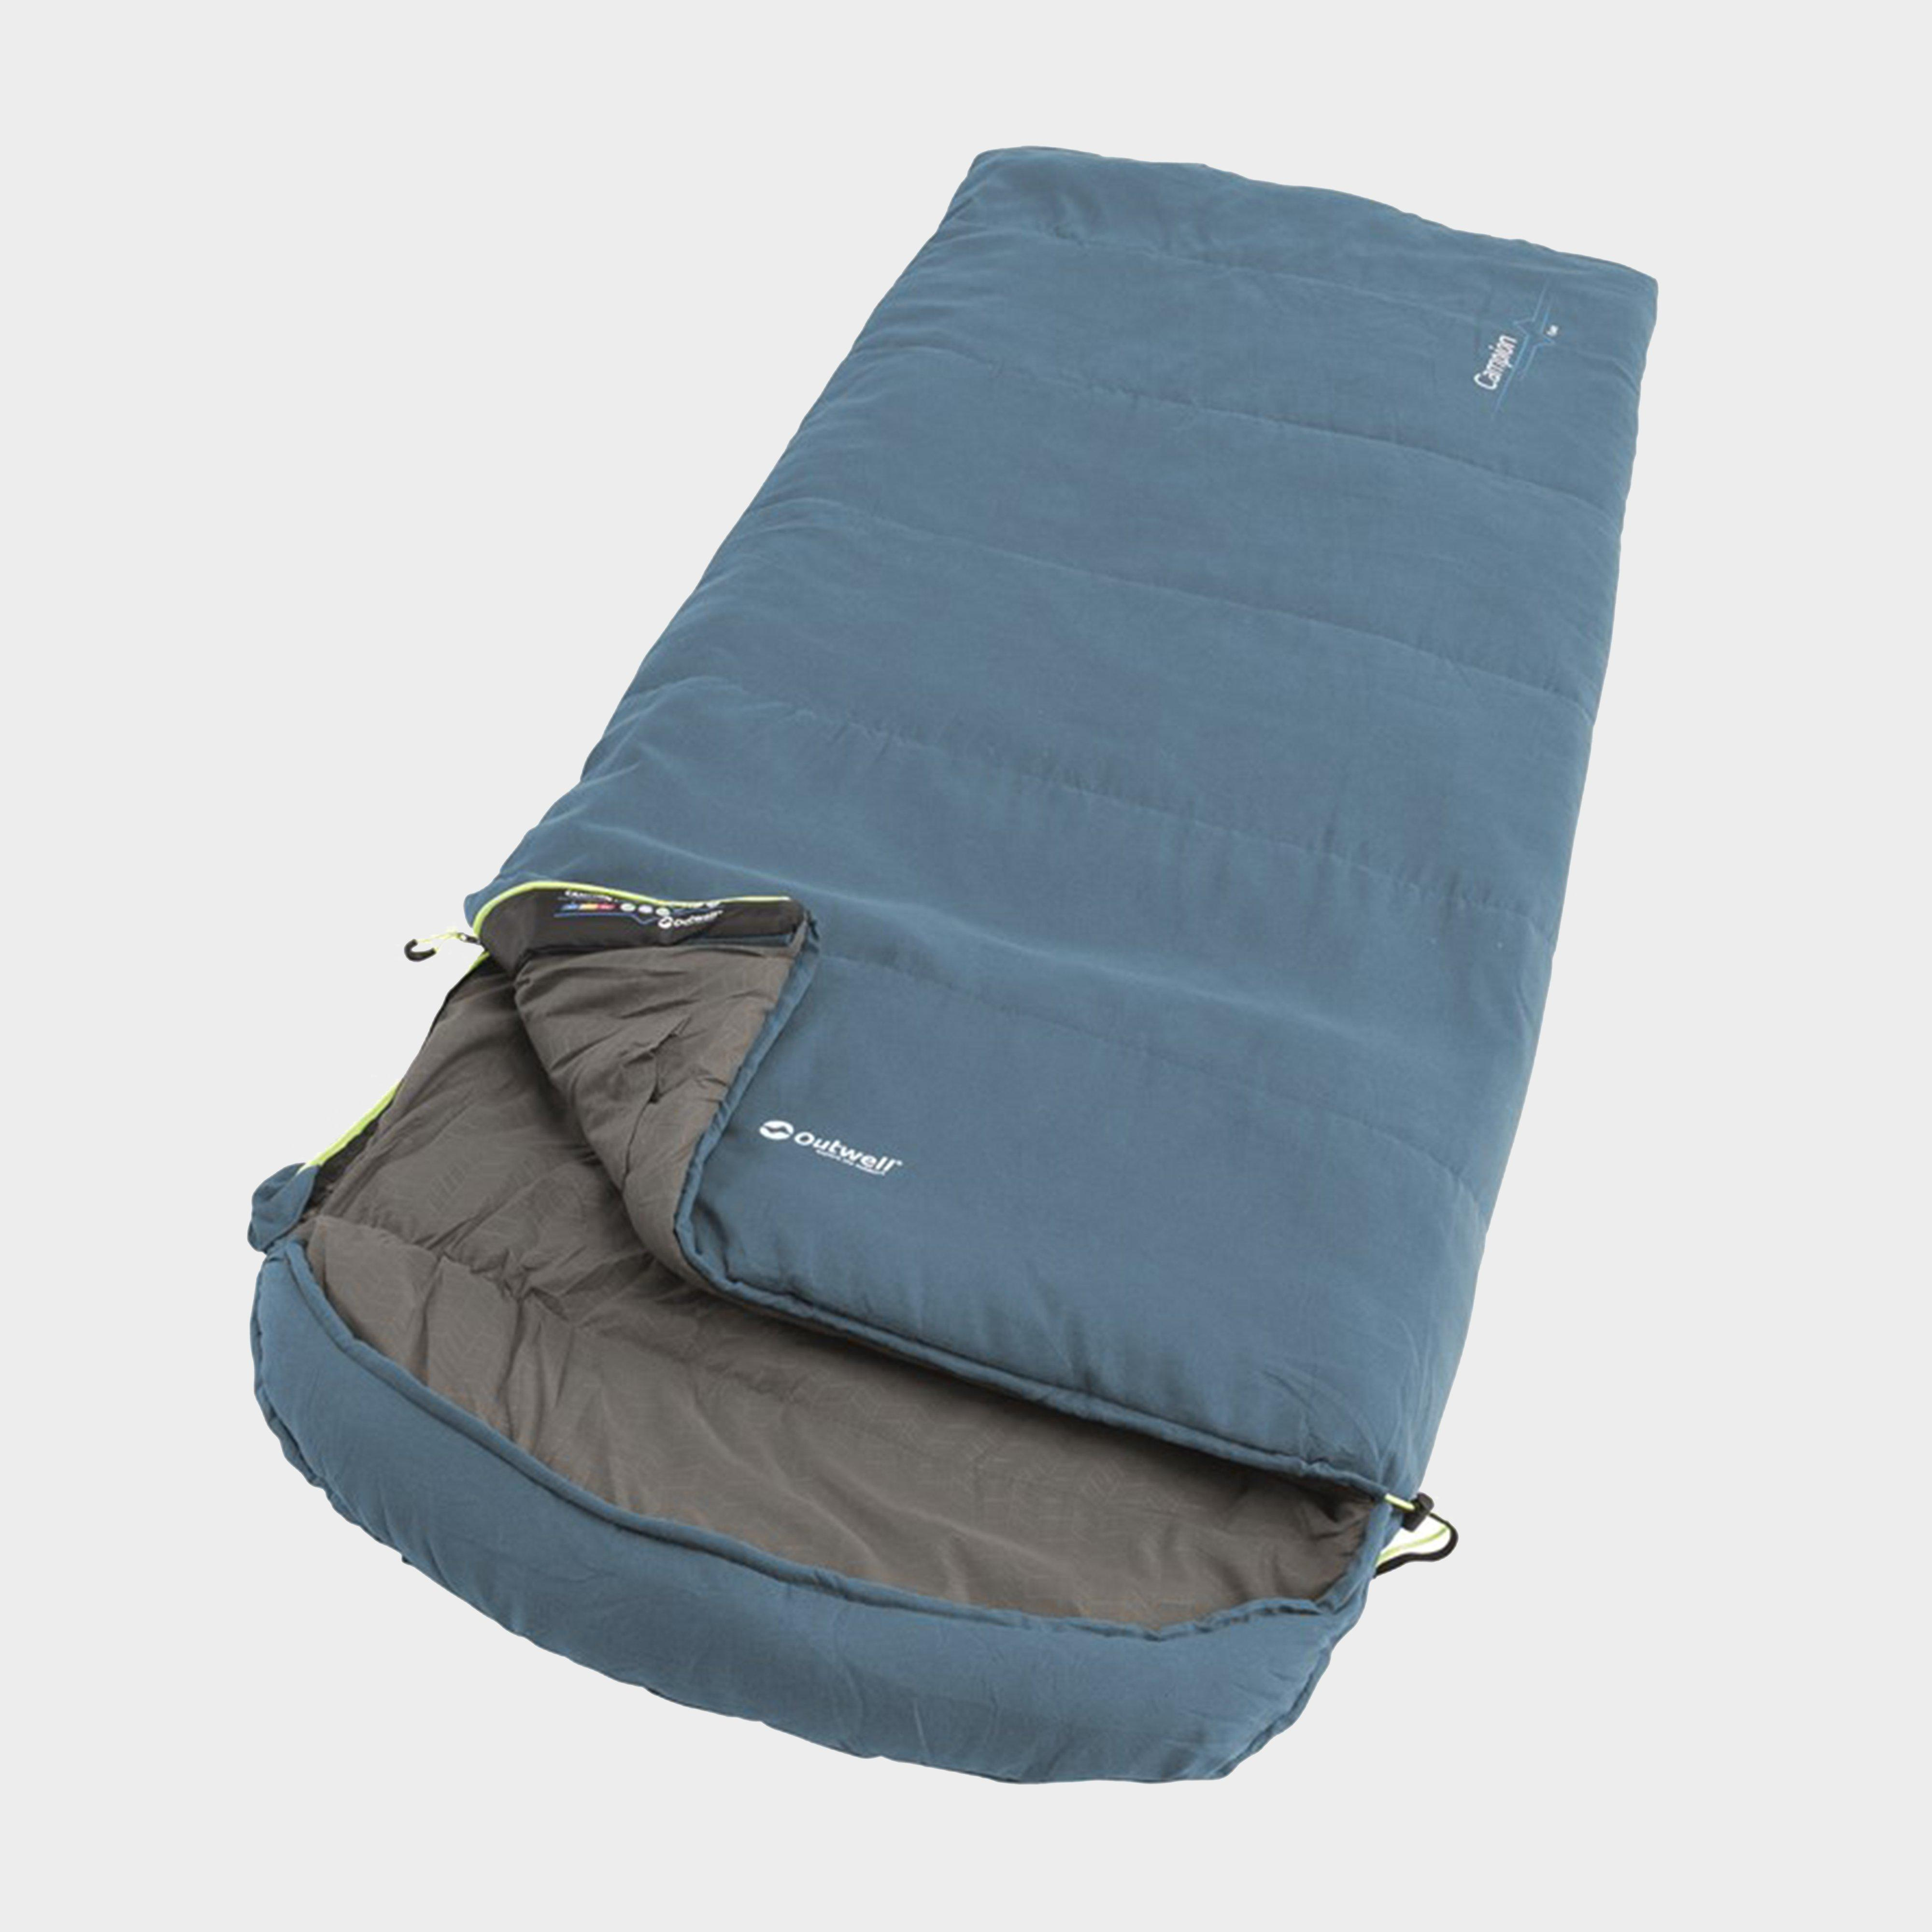 Outwell Outwell Campion Lux Single Sleeping Bag - Blue, Blue